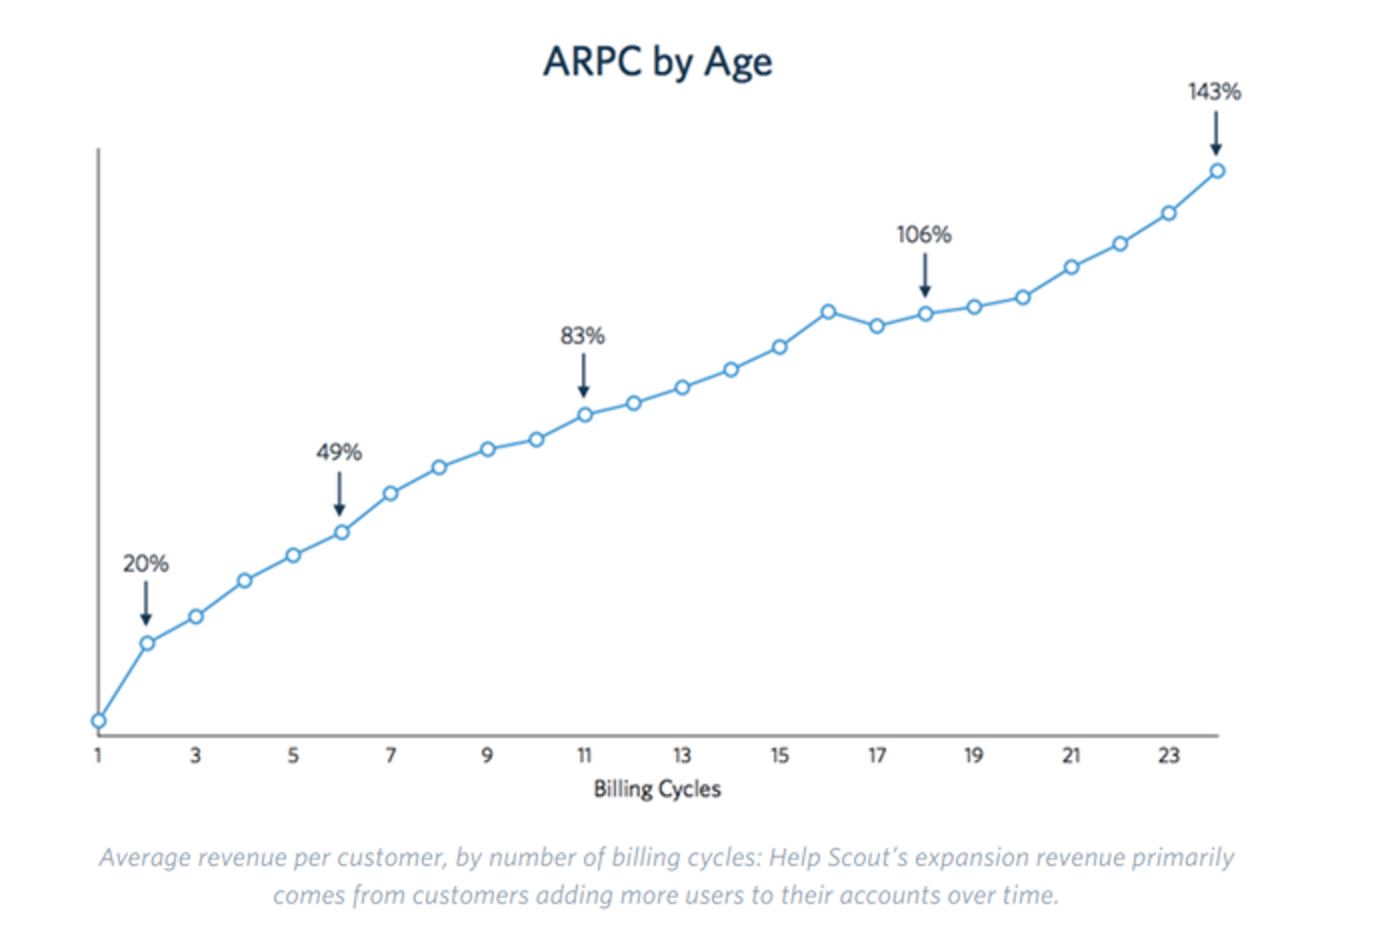 arpc by age